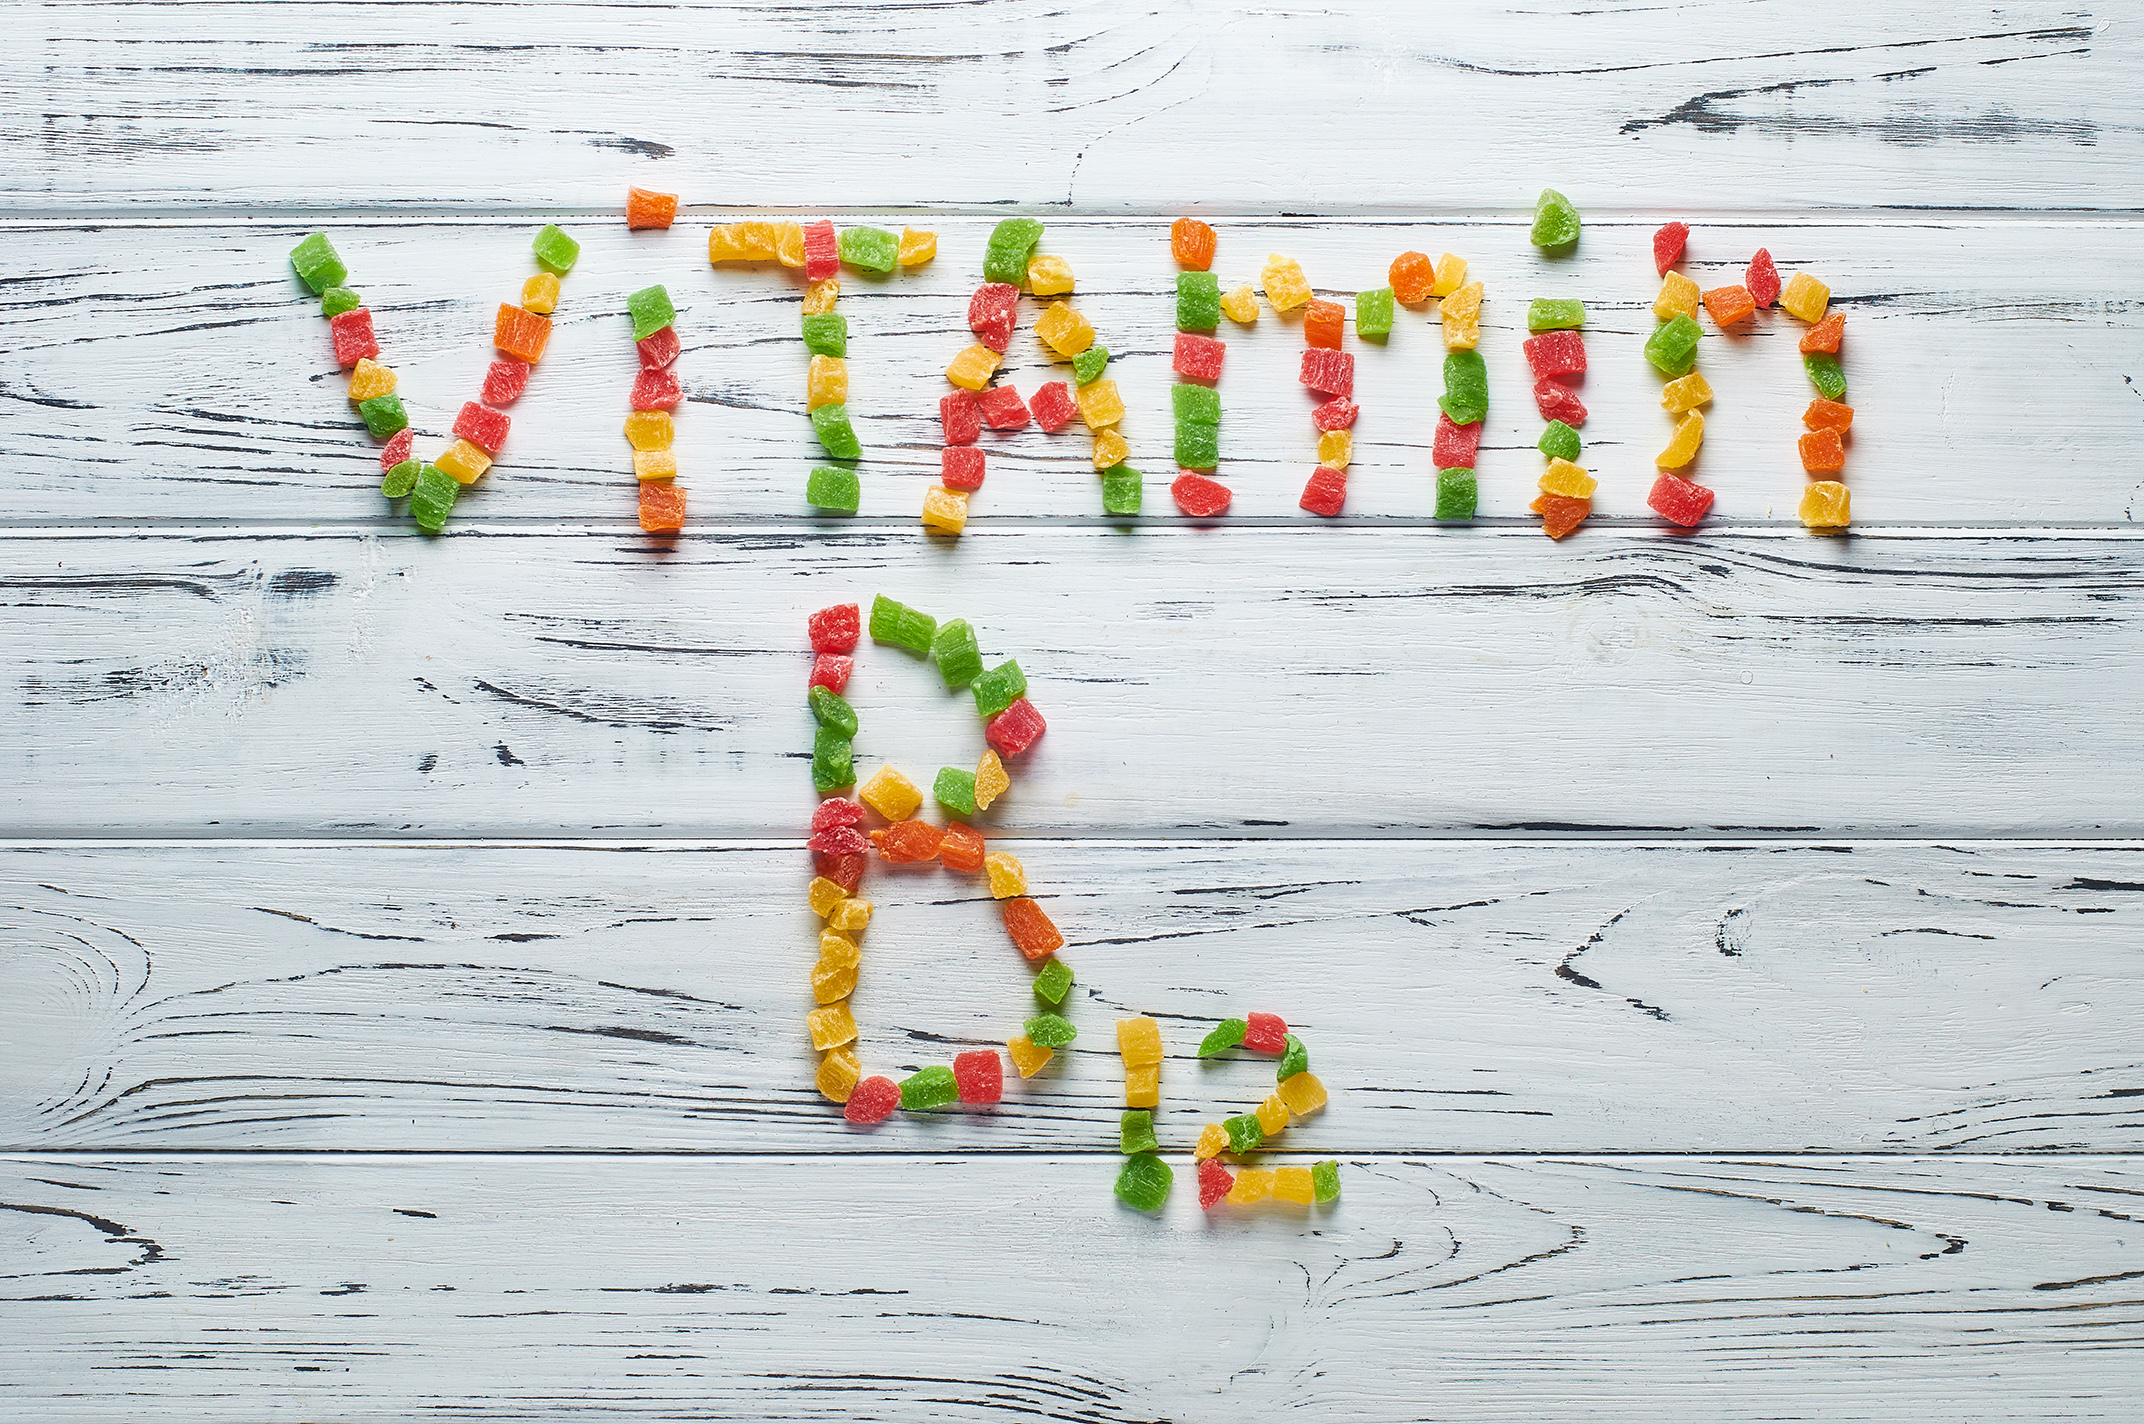 The word vitamin B12 written pieces of candy.